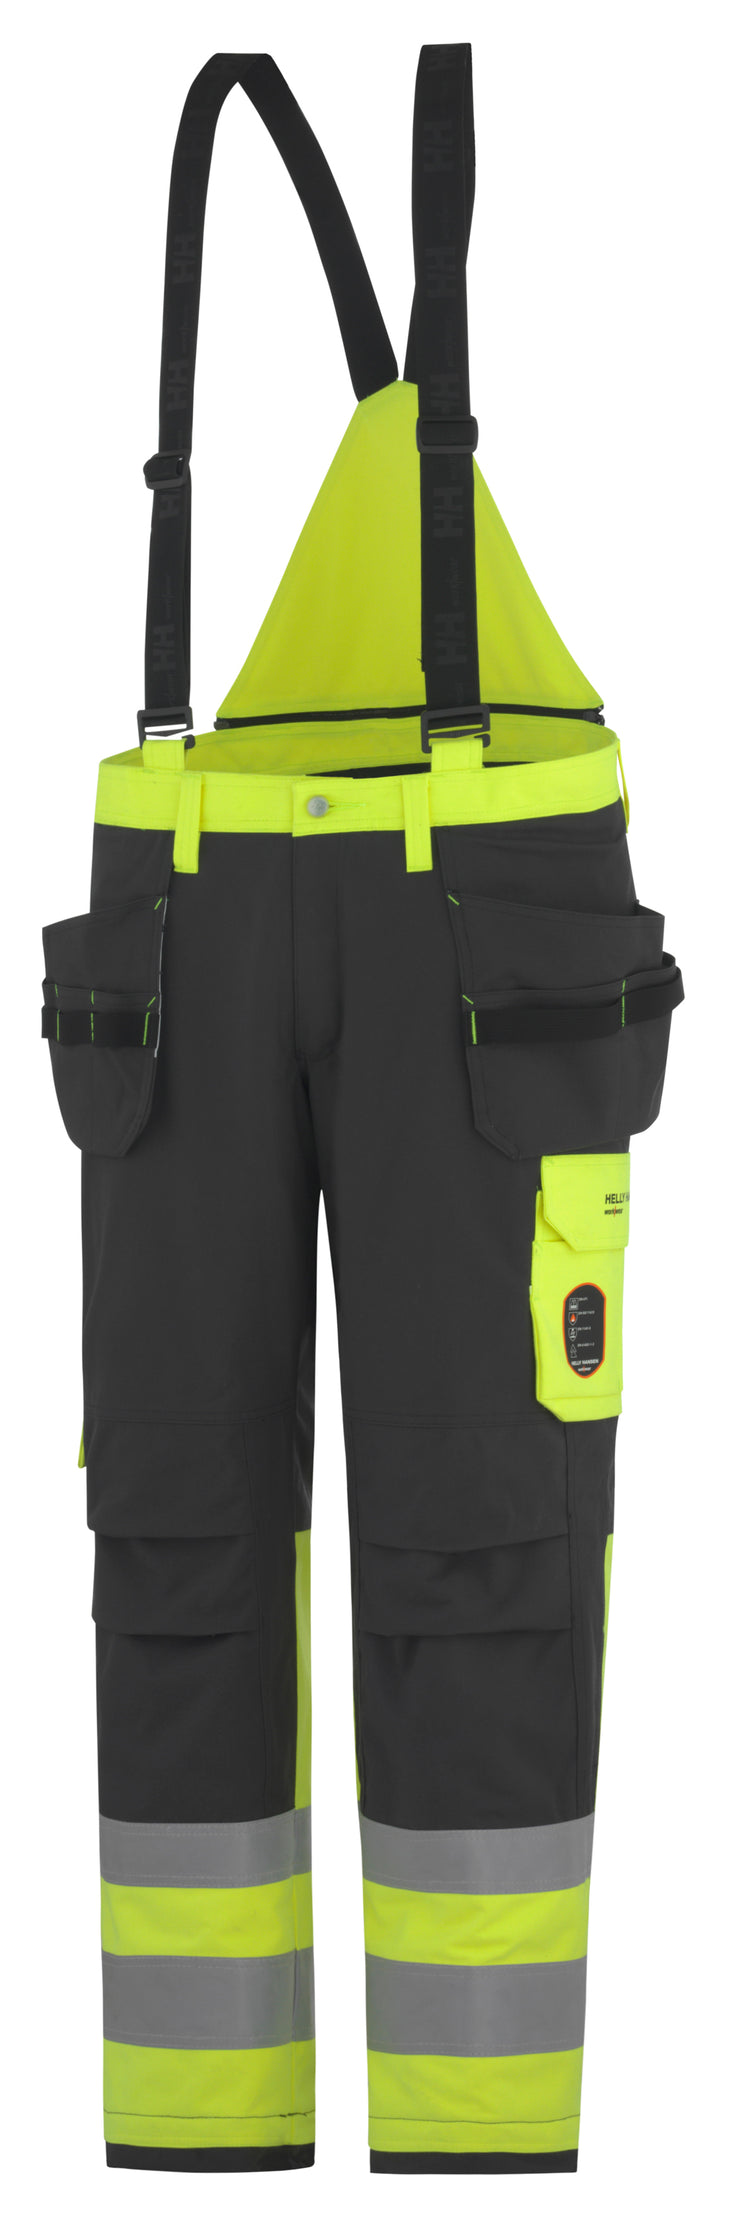 71486 H/H Aberdeen Multinorm insulated construction pant CL1